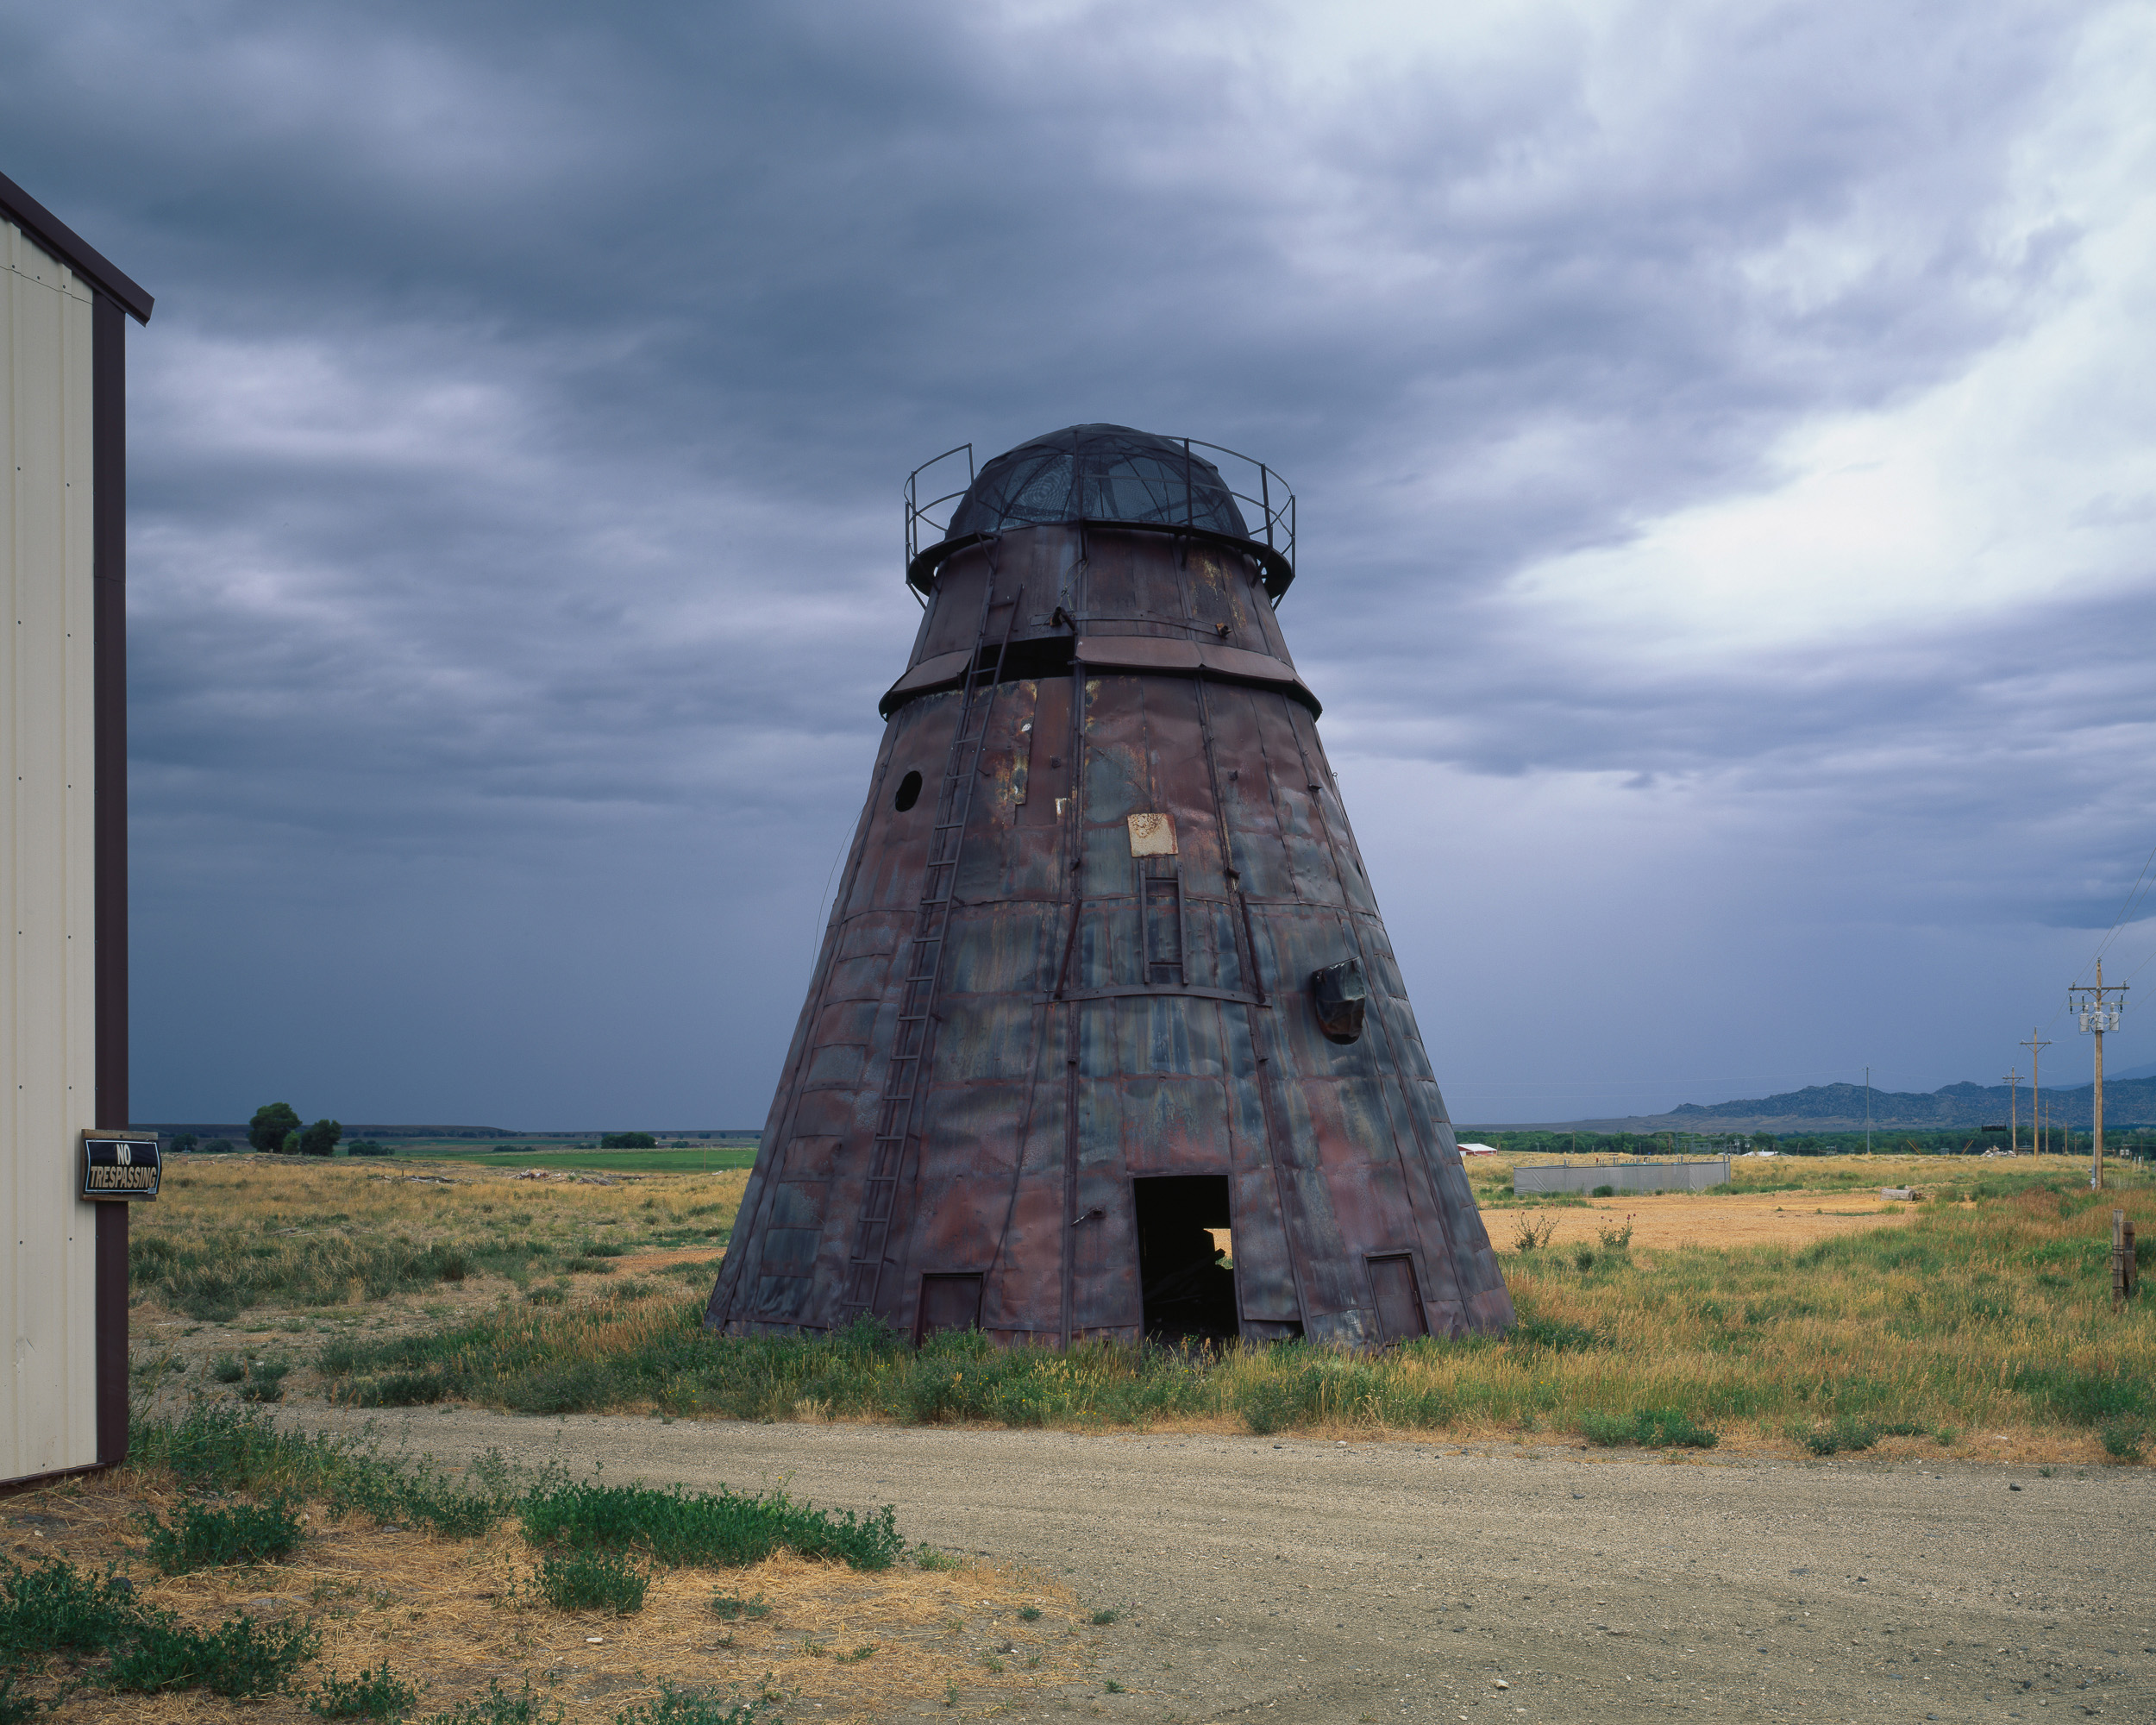 Conical Burner, Grand Encampment, Wyoming